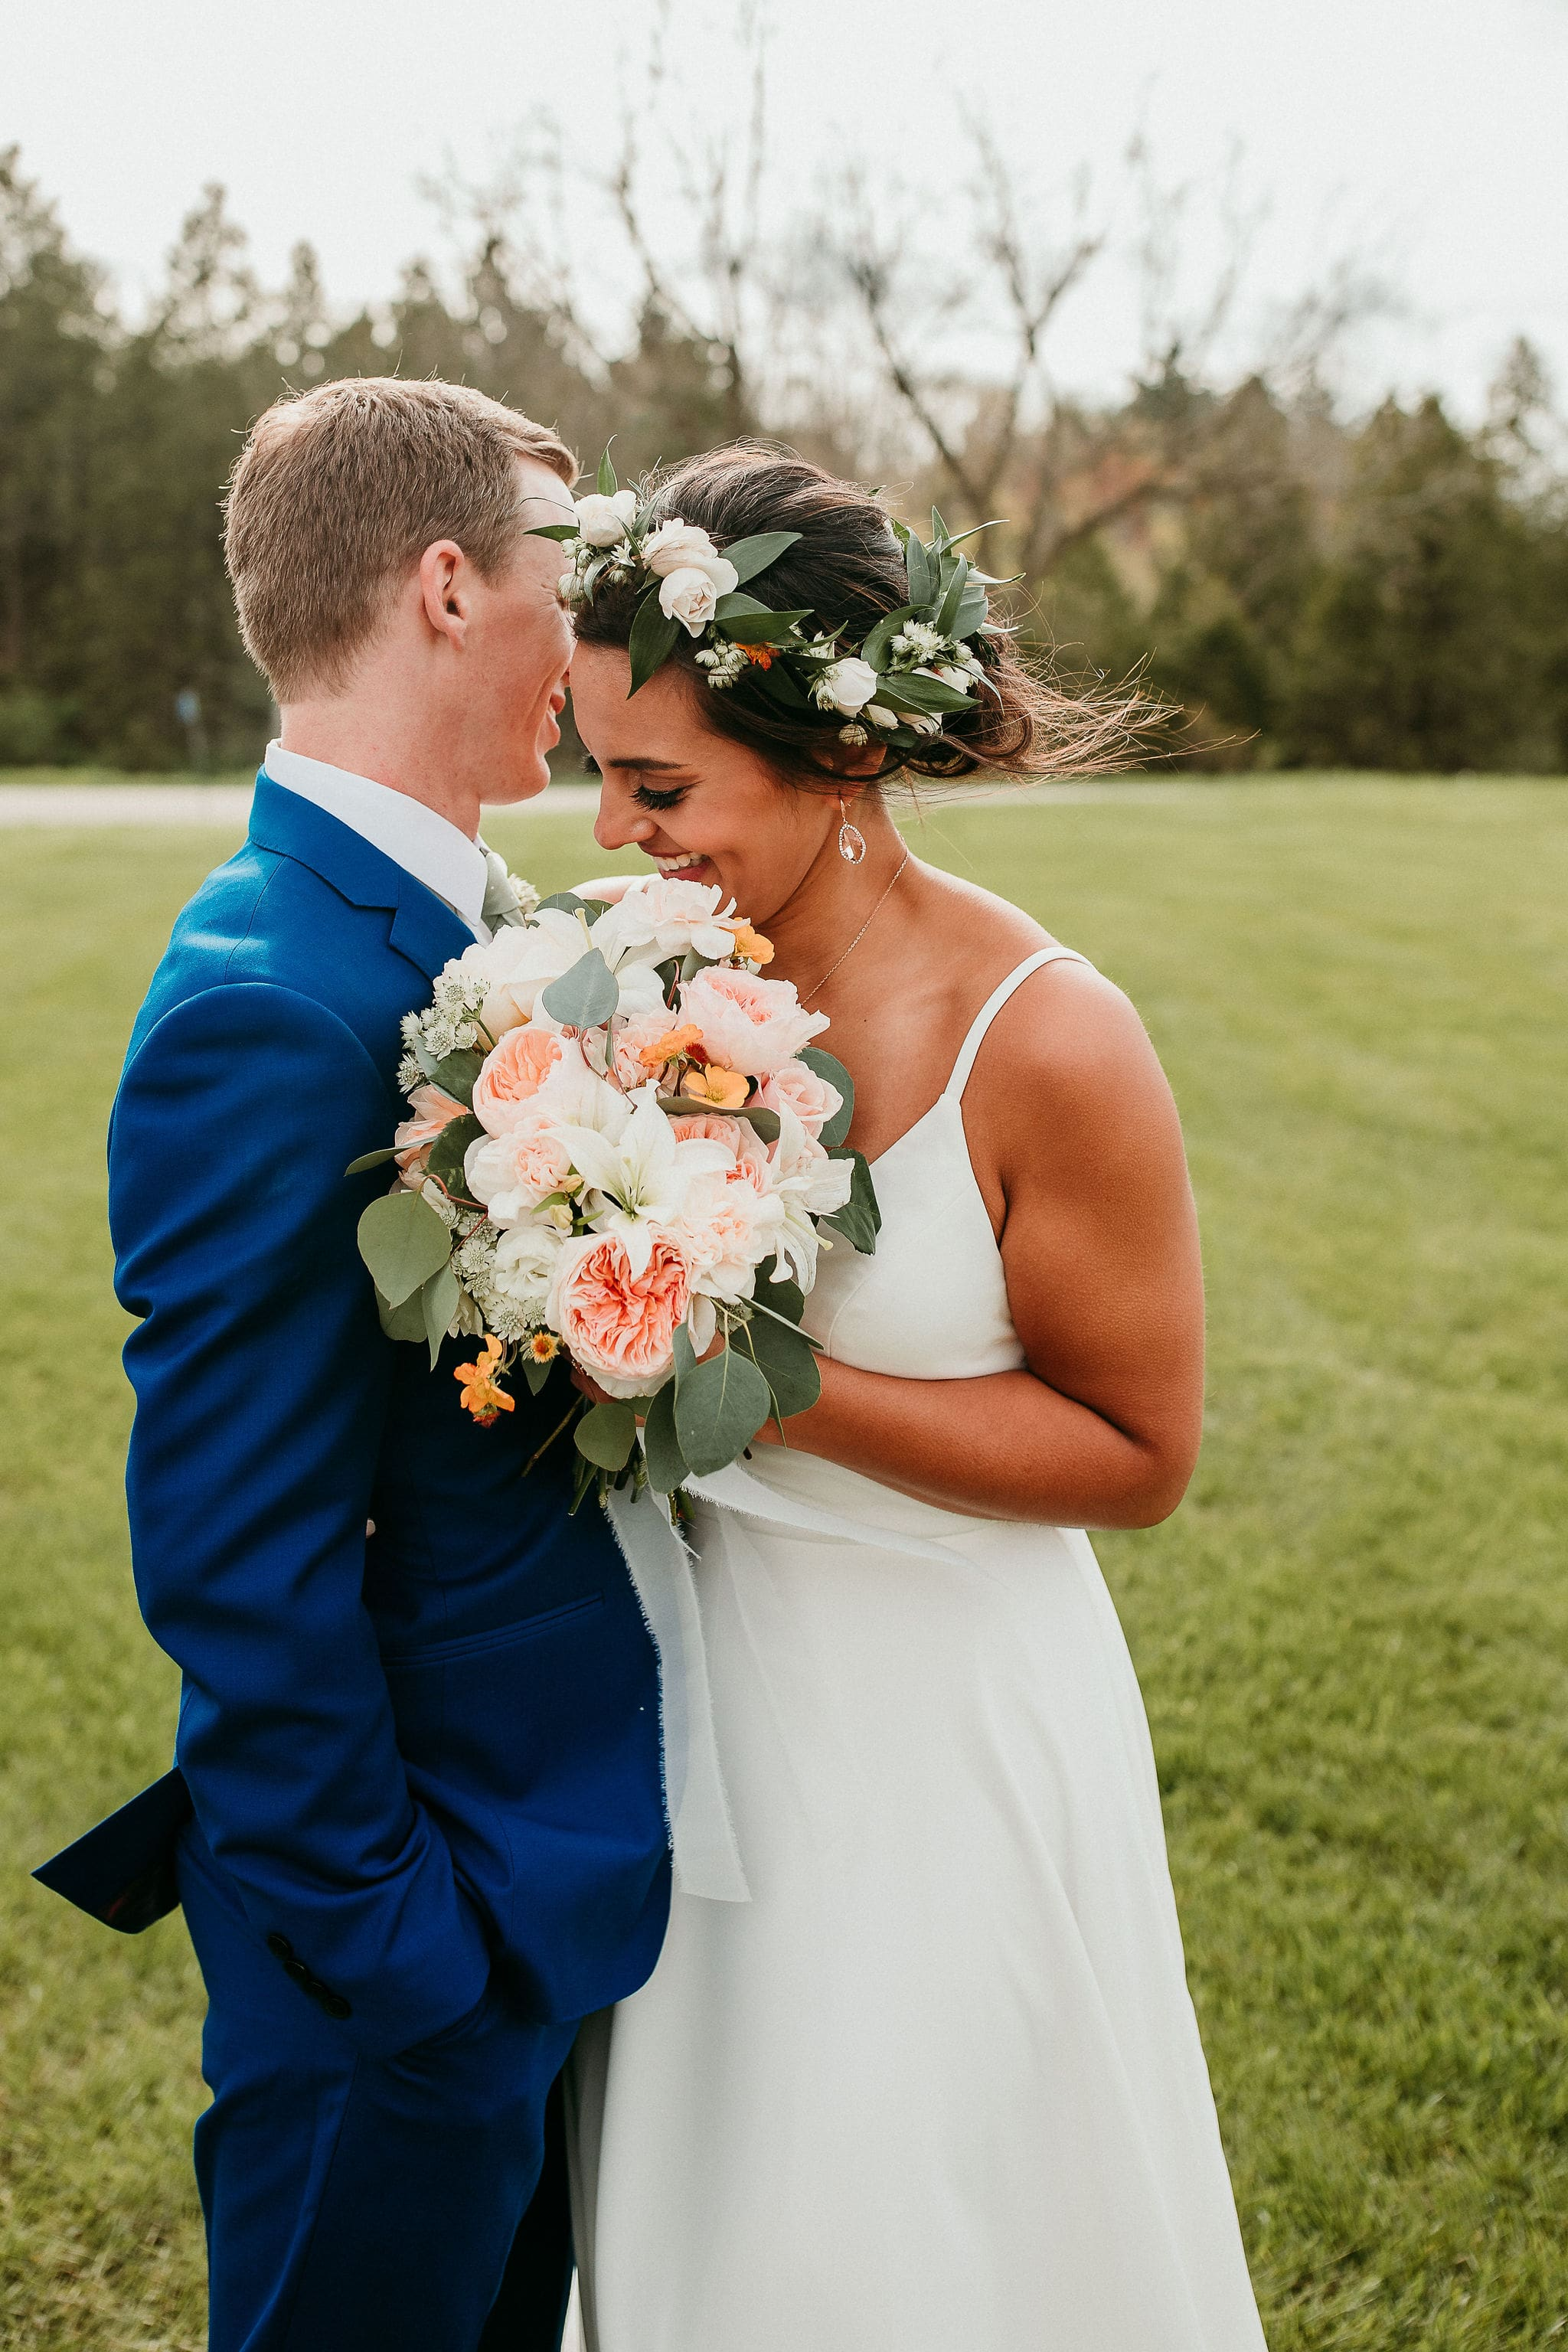 Bride and Groom Share Moment before Reception